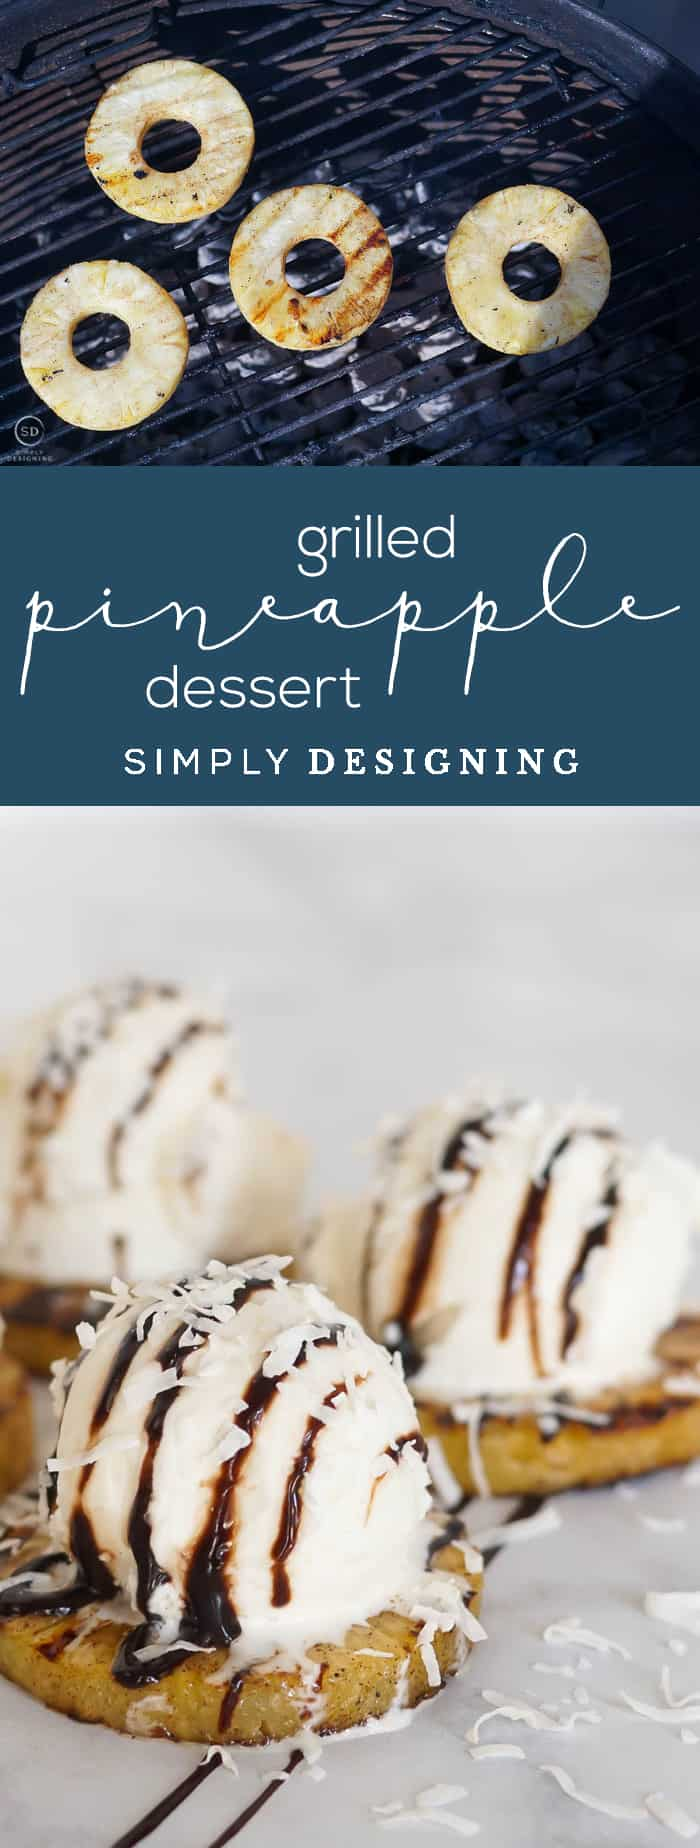 Grilled Pineapple Recipe and a Scrumptious Pineapple Dessert Idea